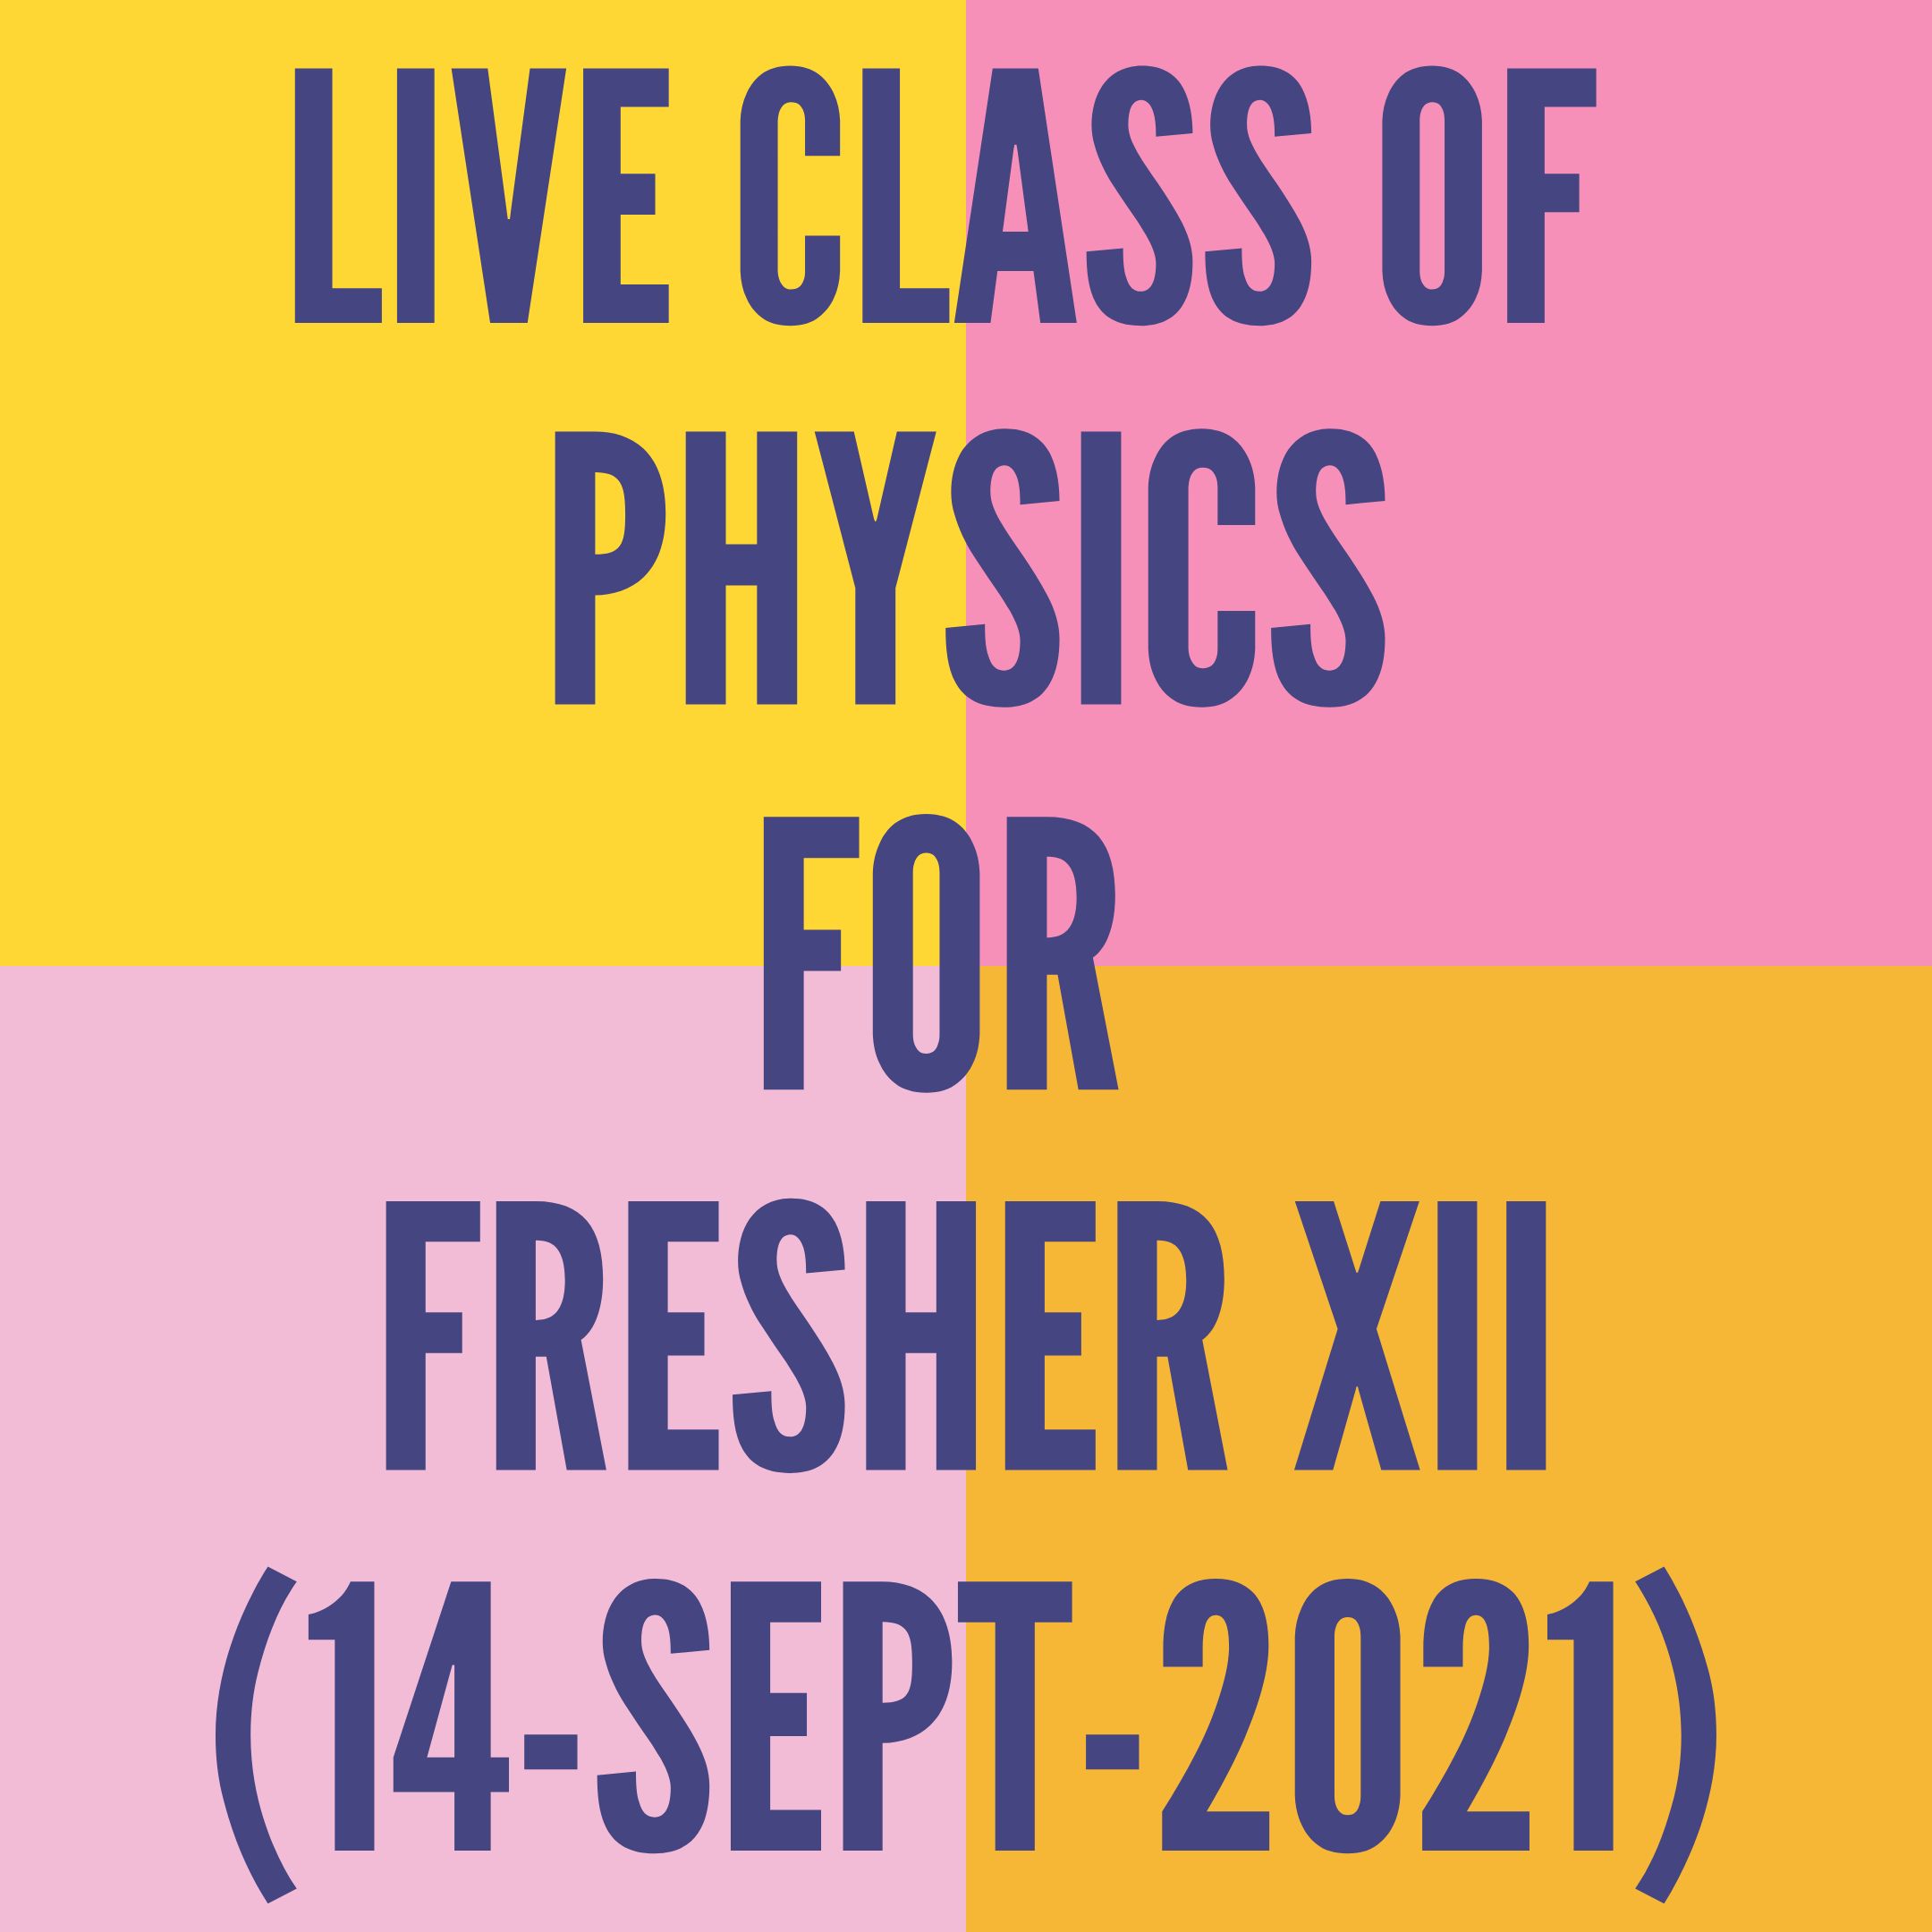 LIVE CLASS OF PHYSICS FOR FRESHER XII (14-SEPT-2021) PERMANENT MAGNETISM